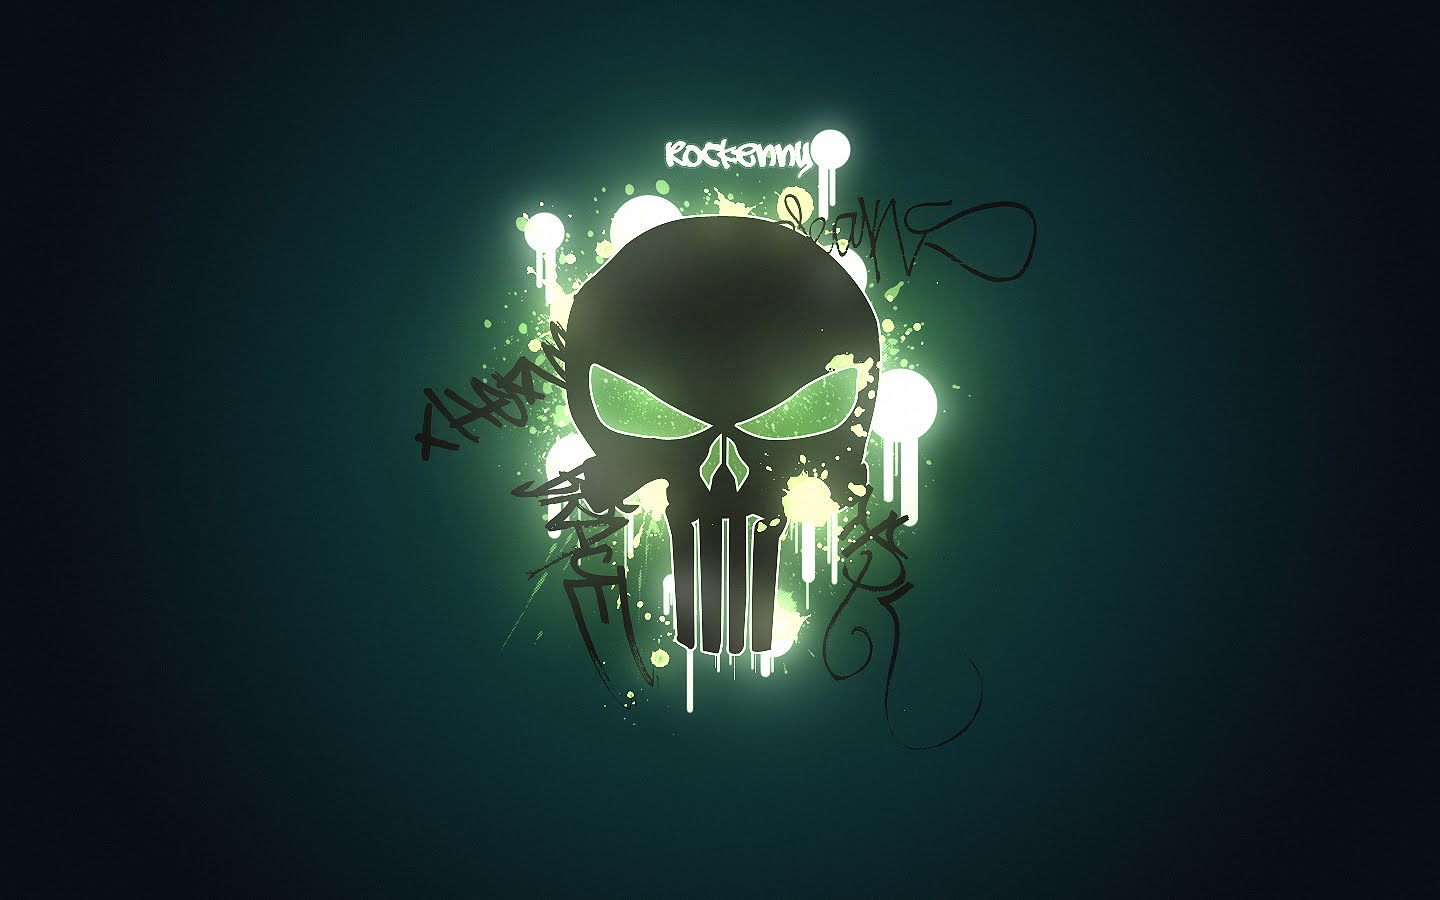 Incredible Neon Skull Wallpaper: Clickandseeworld Is All About Funny